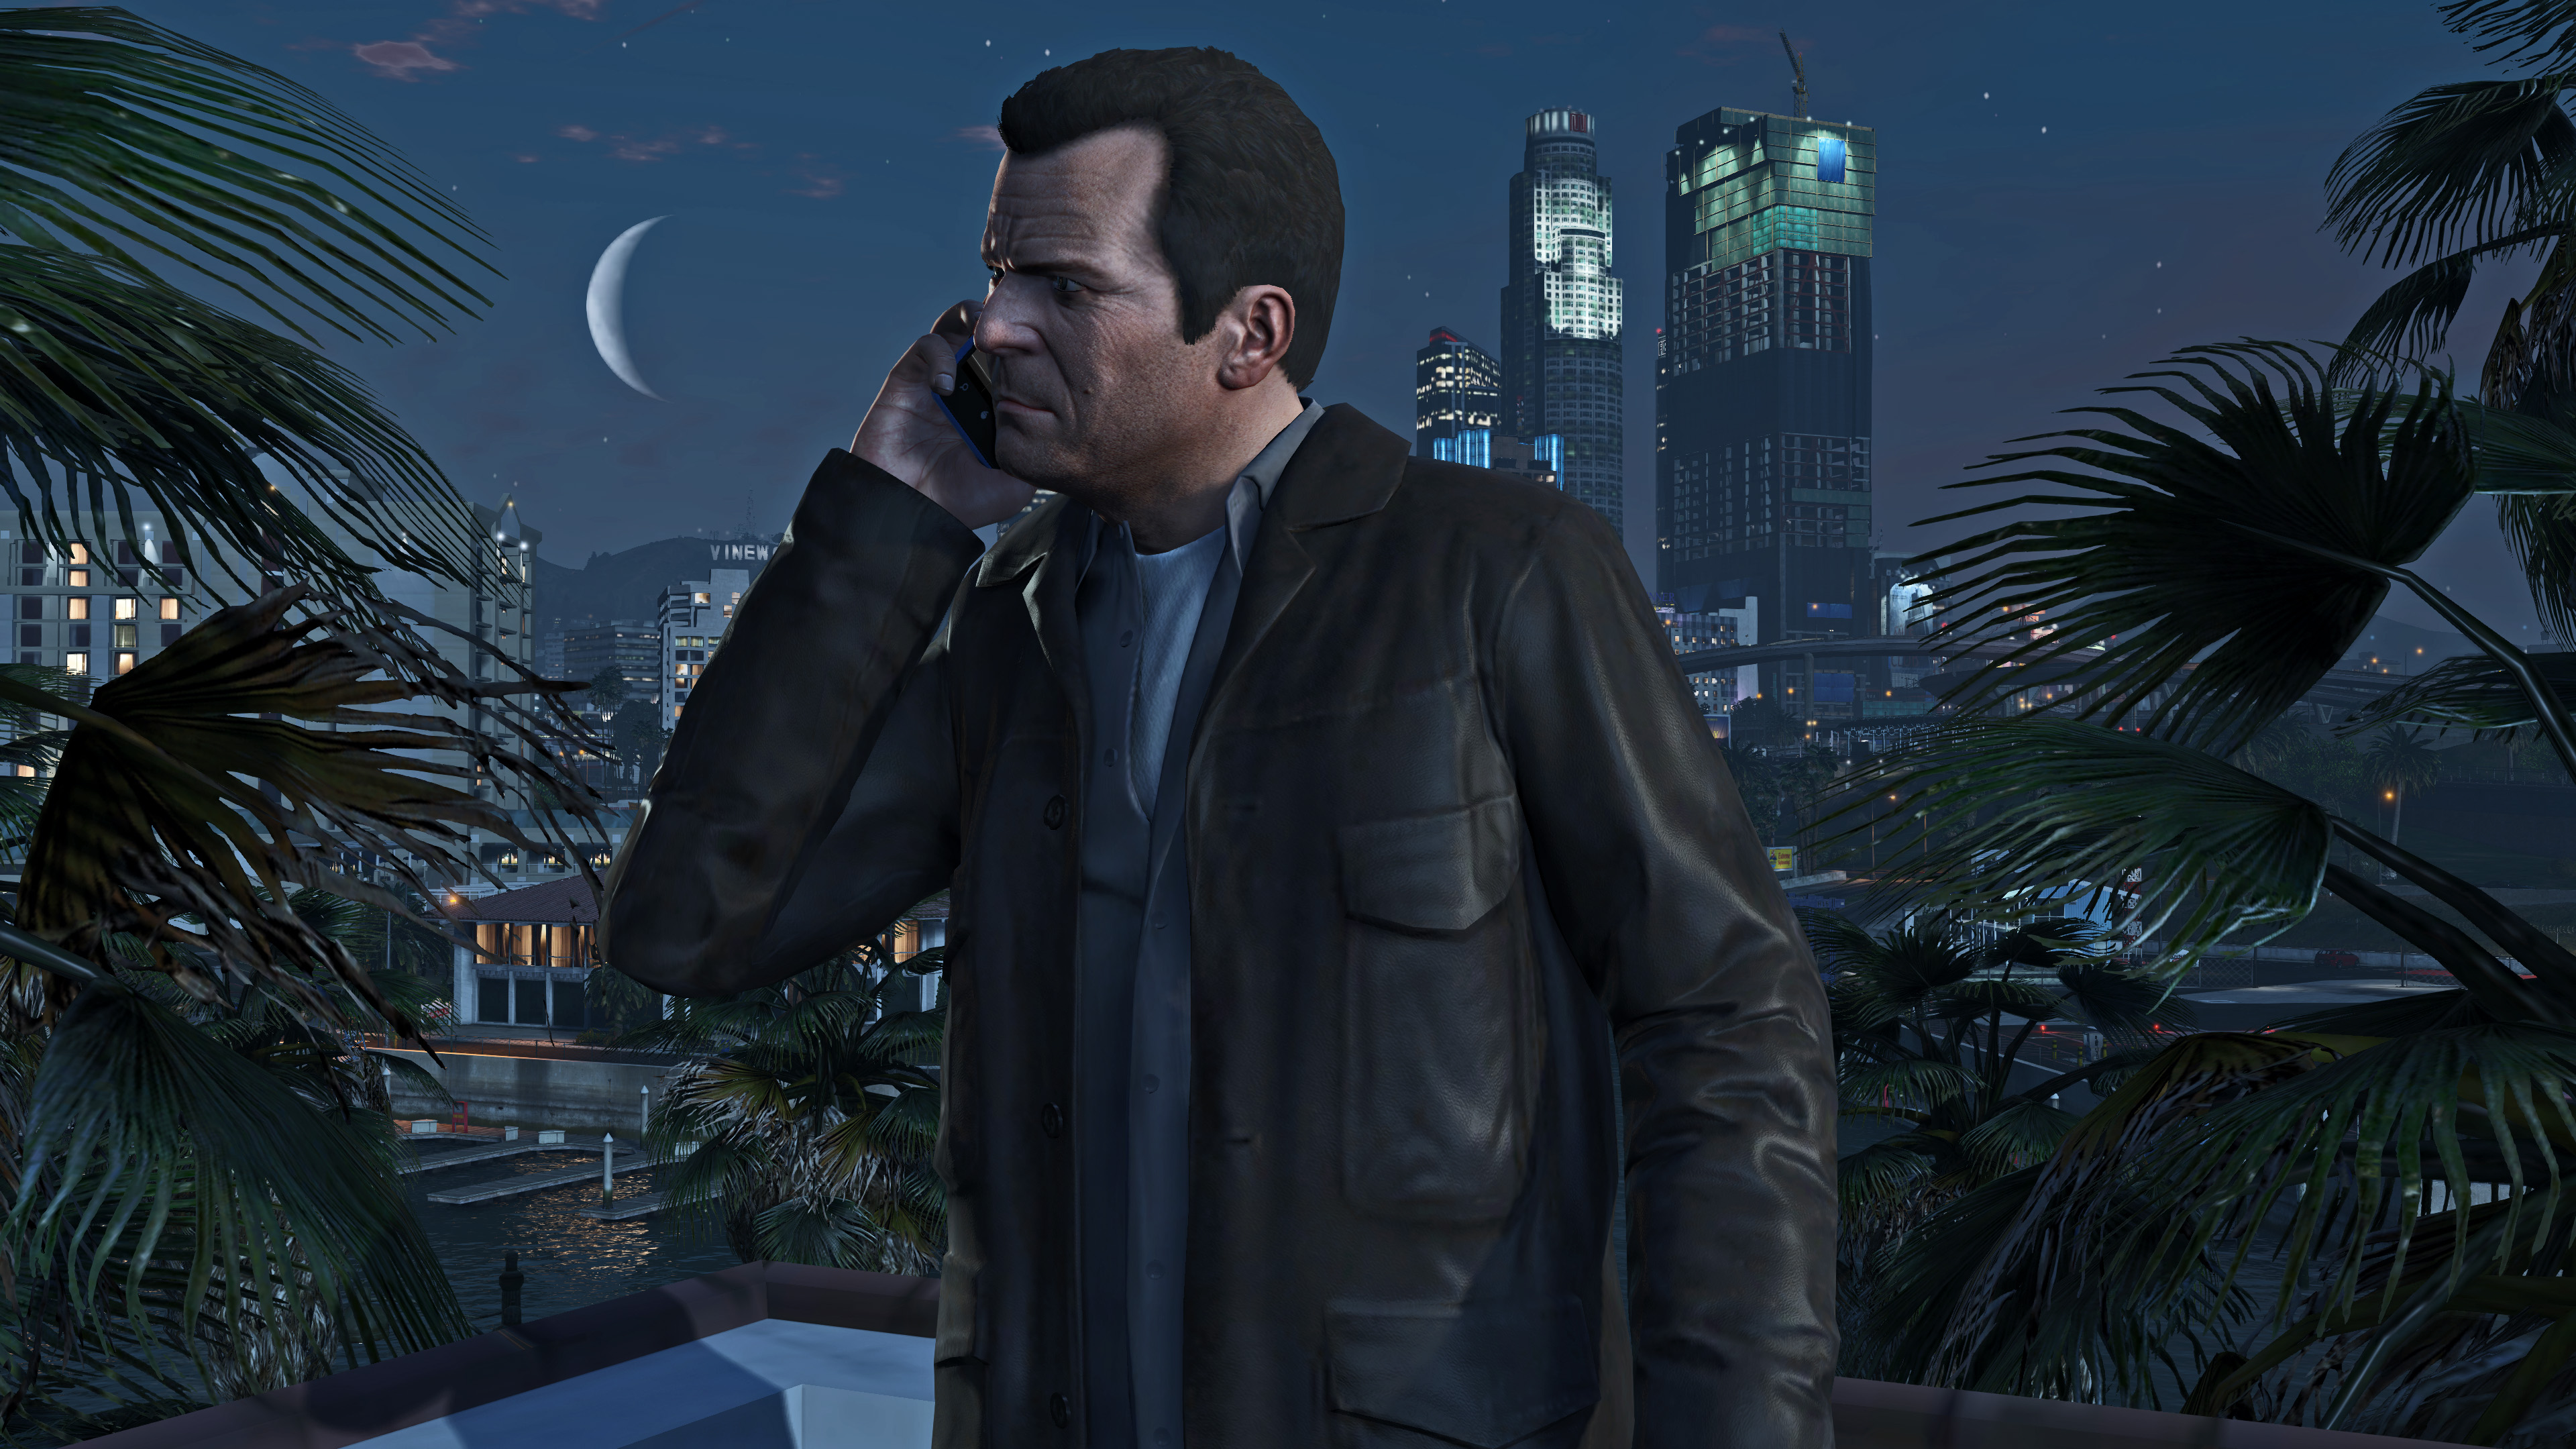 Grand Theft Auto V GTA 5 4k Ultra HD Wallpaper And Background